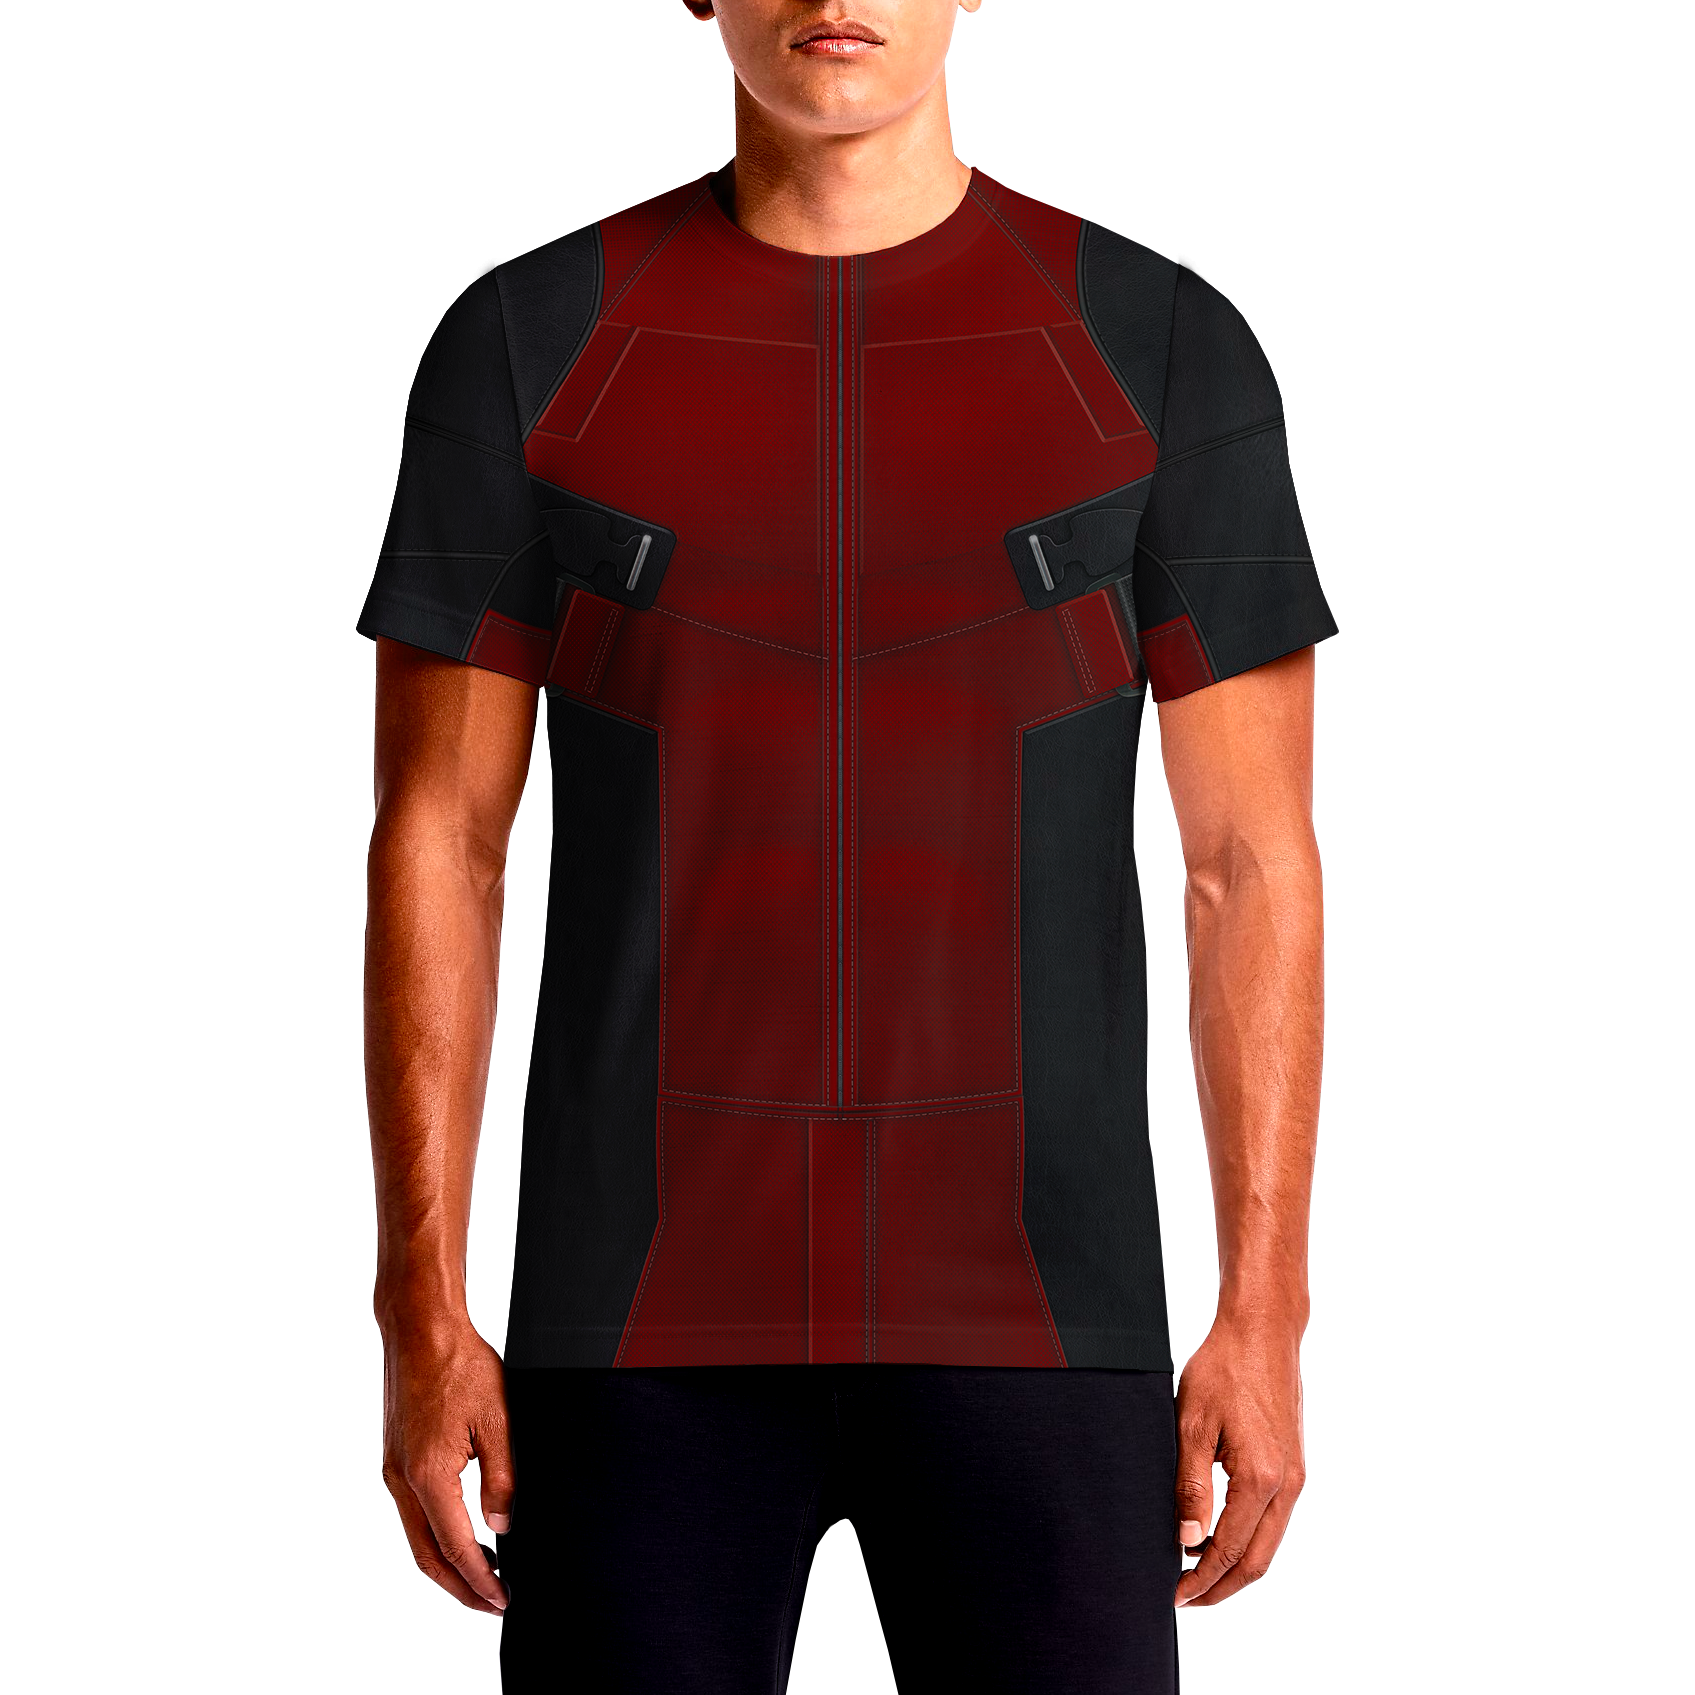 Shirt design online cheap